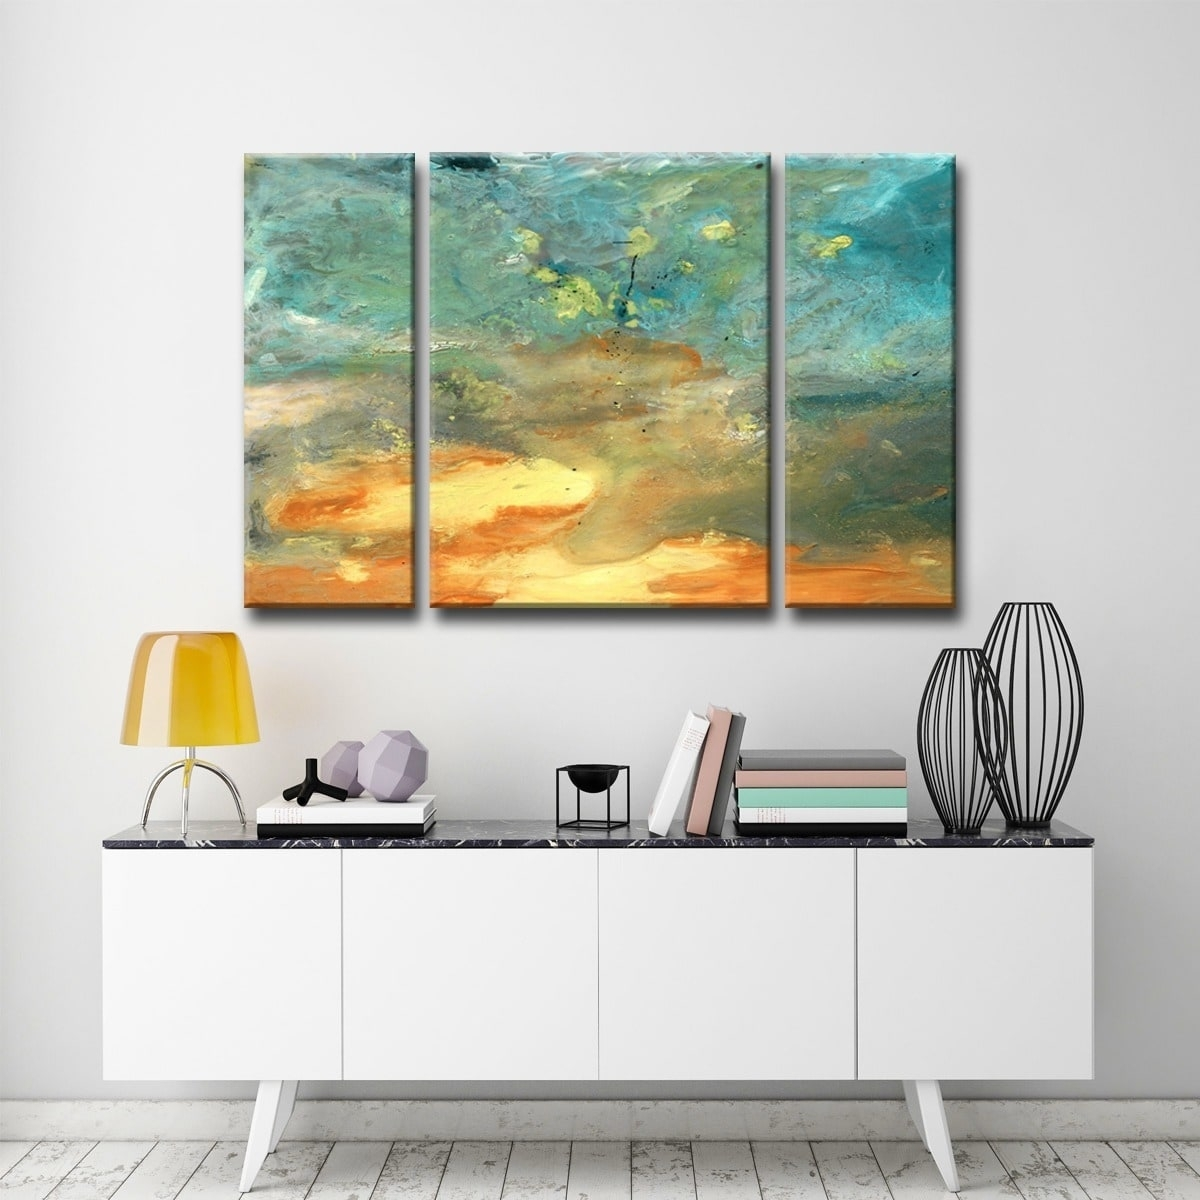 Shop Ready2Hangart 'abstract Landscape' 3-Piece Canvas Wall Art - On throughout 3 Piece Canvas Wall Art (Image 17 of 20)